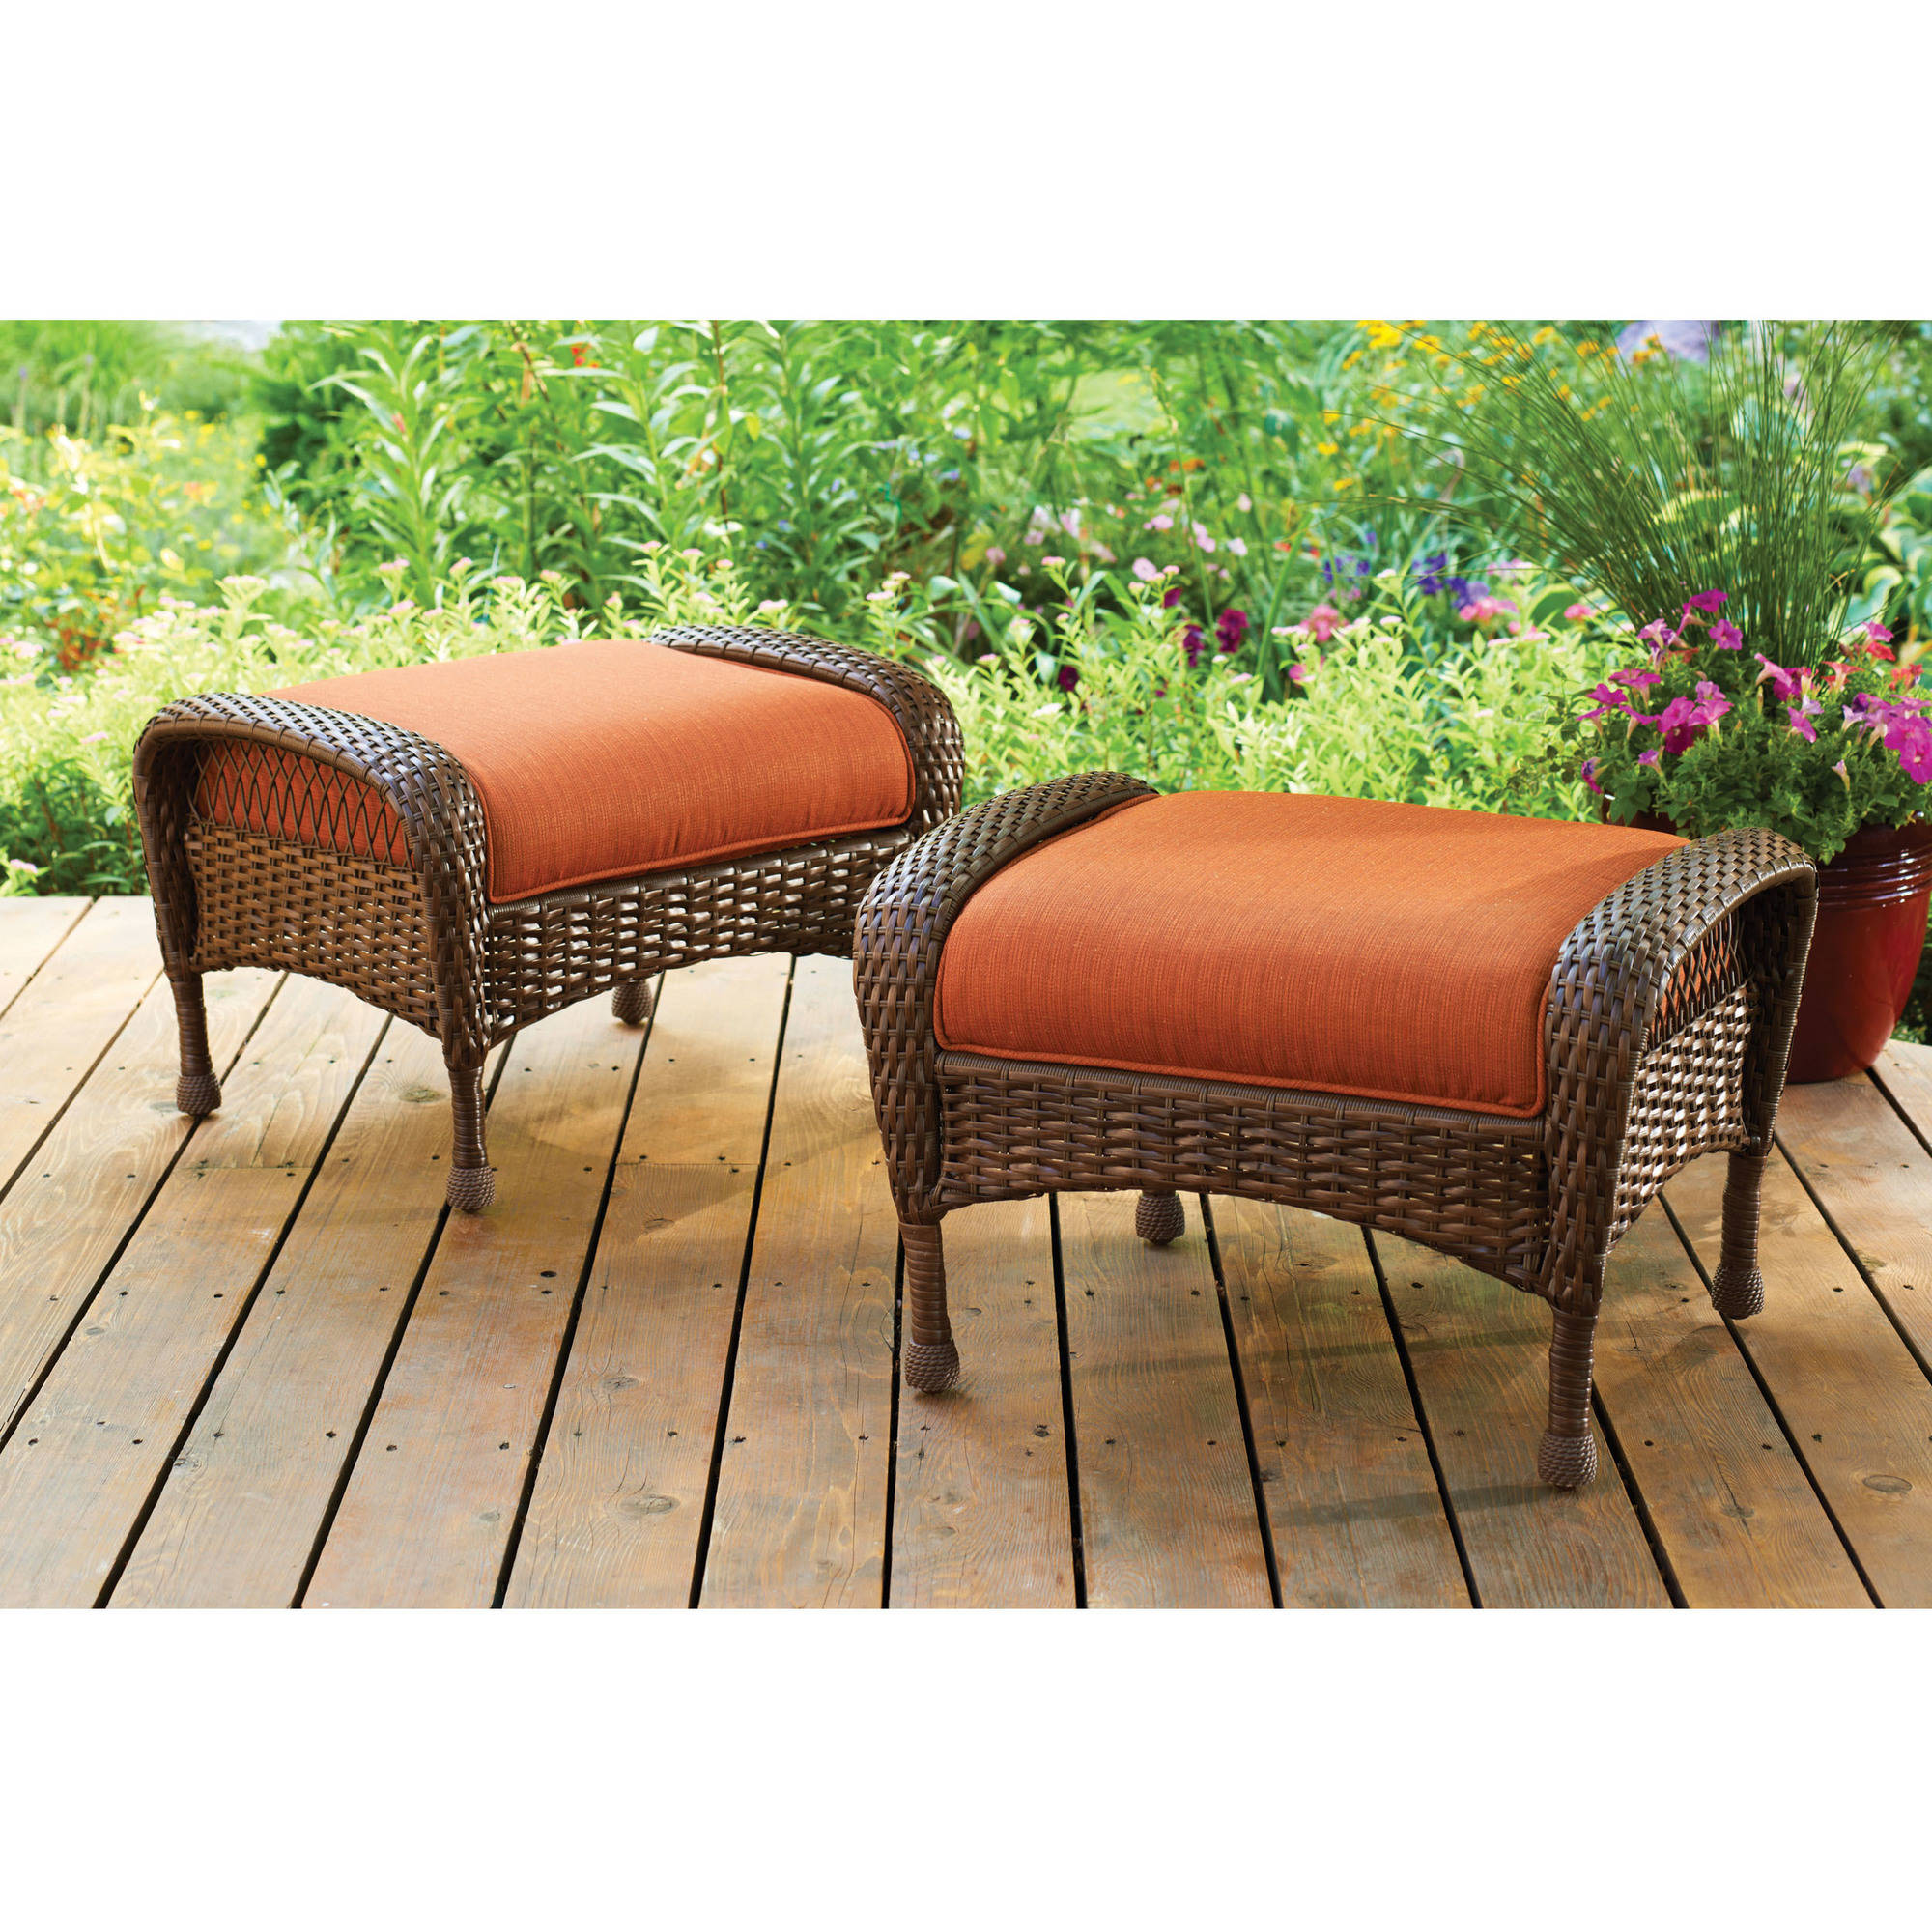 The Best Materials For Outdoor Furniture